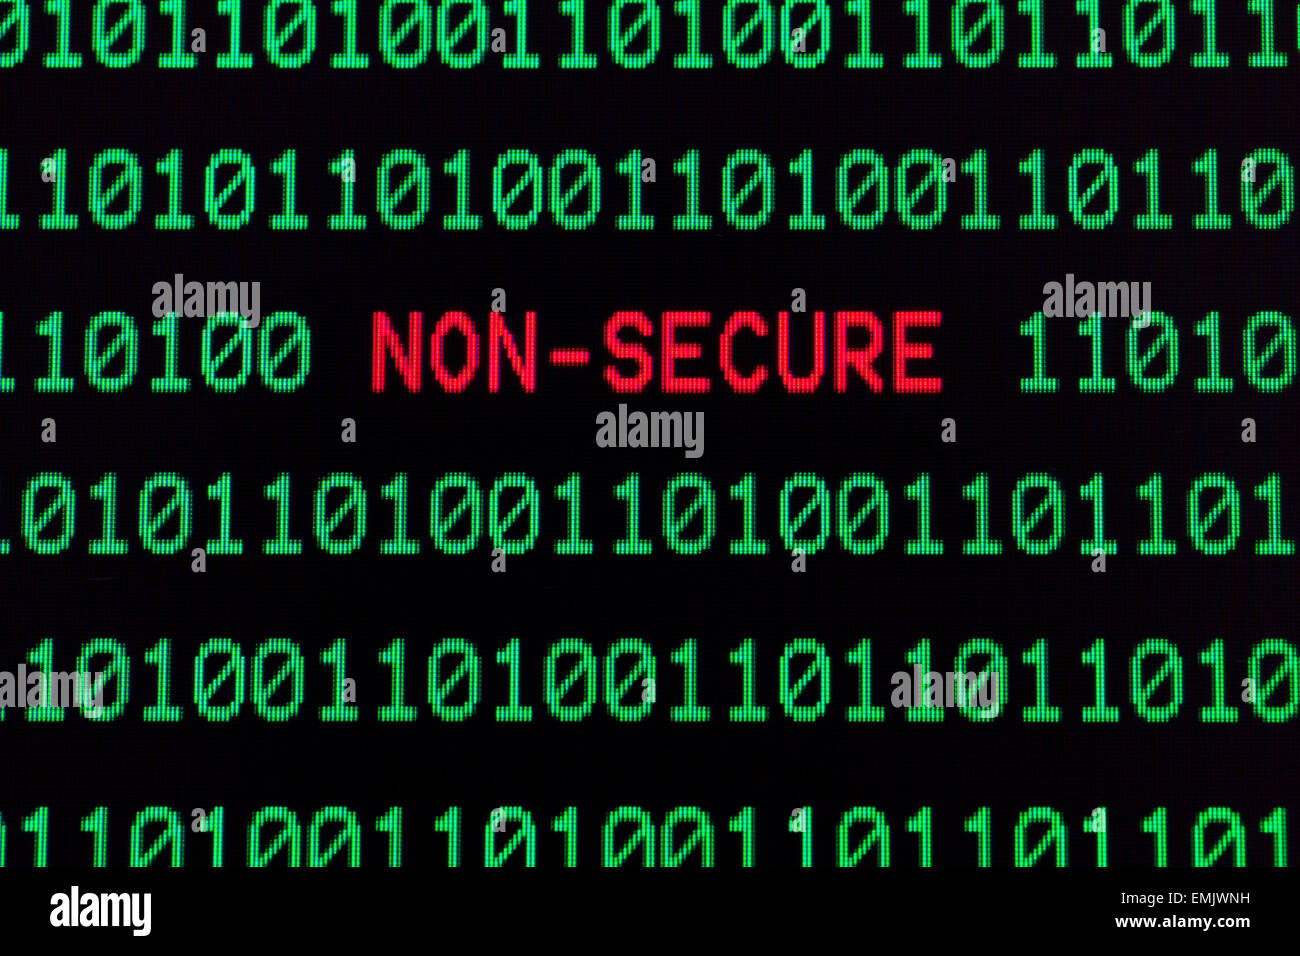 Non-secure message on computer screen - Stock Image